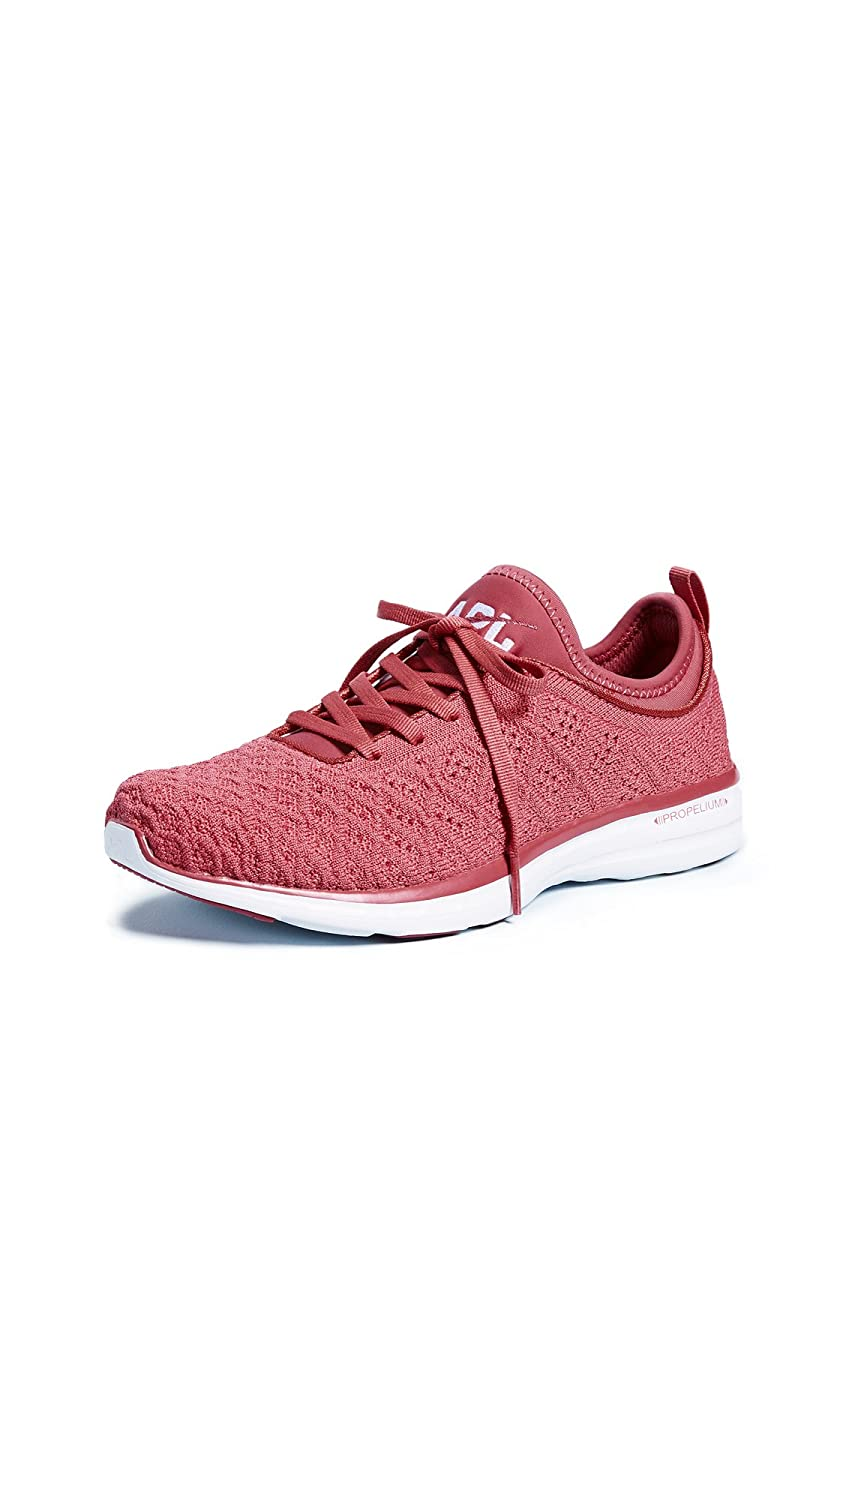 APL: Athletic Propulsion Labs Women's Techloom Phantom Sneakers B07BQX1SG6 8 B(M) US|Brick